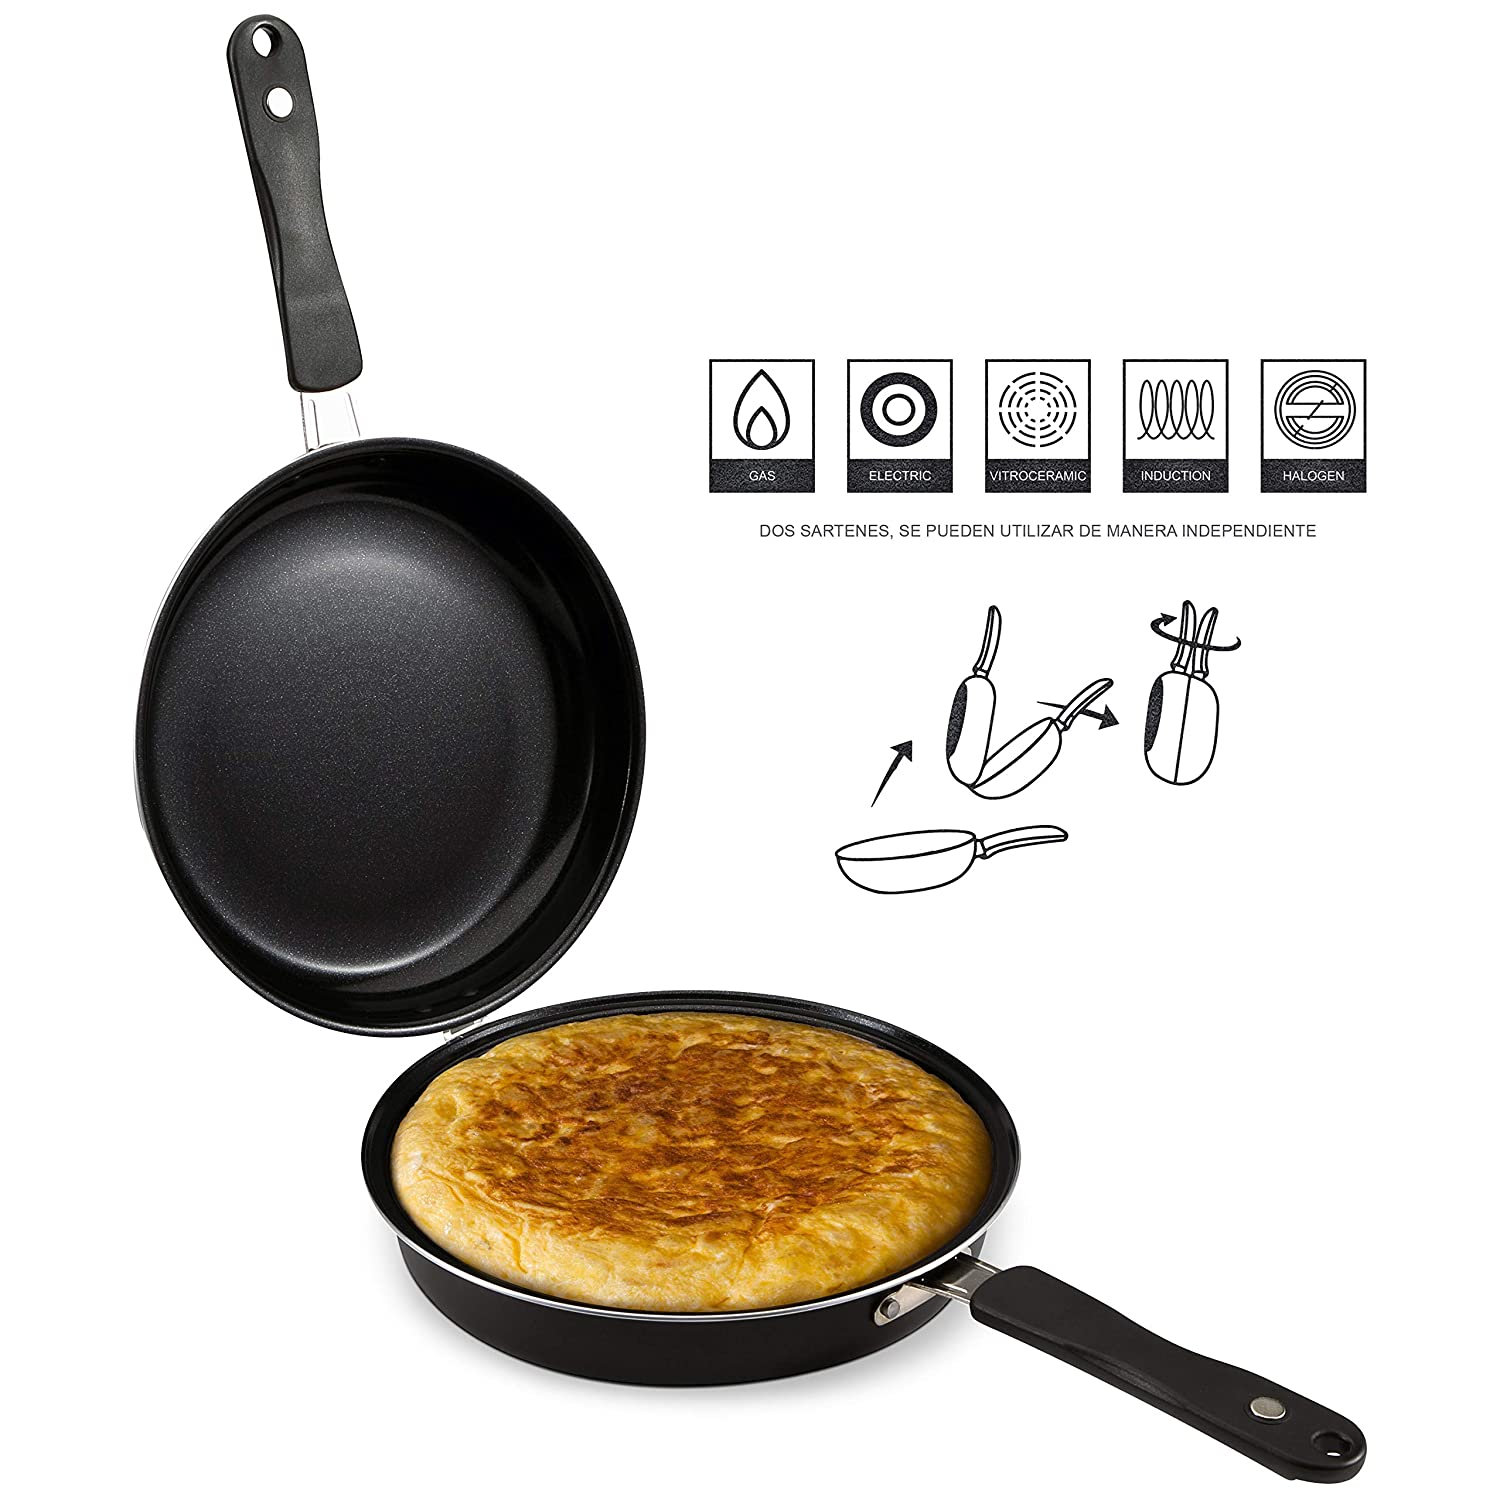 Amazon.com: Renberg Q2914 Double Frying Pan, Special Tortillas, 24 x ...